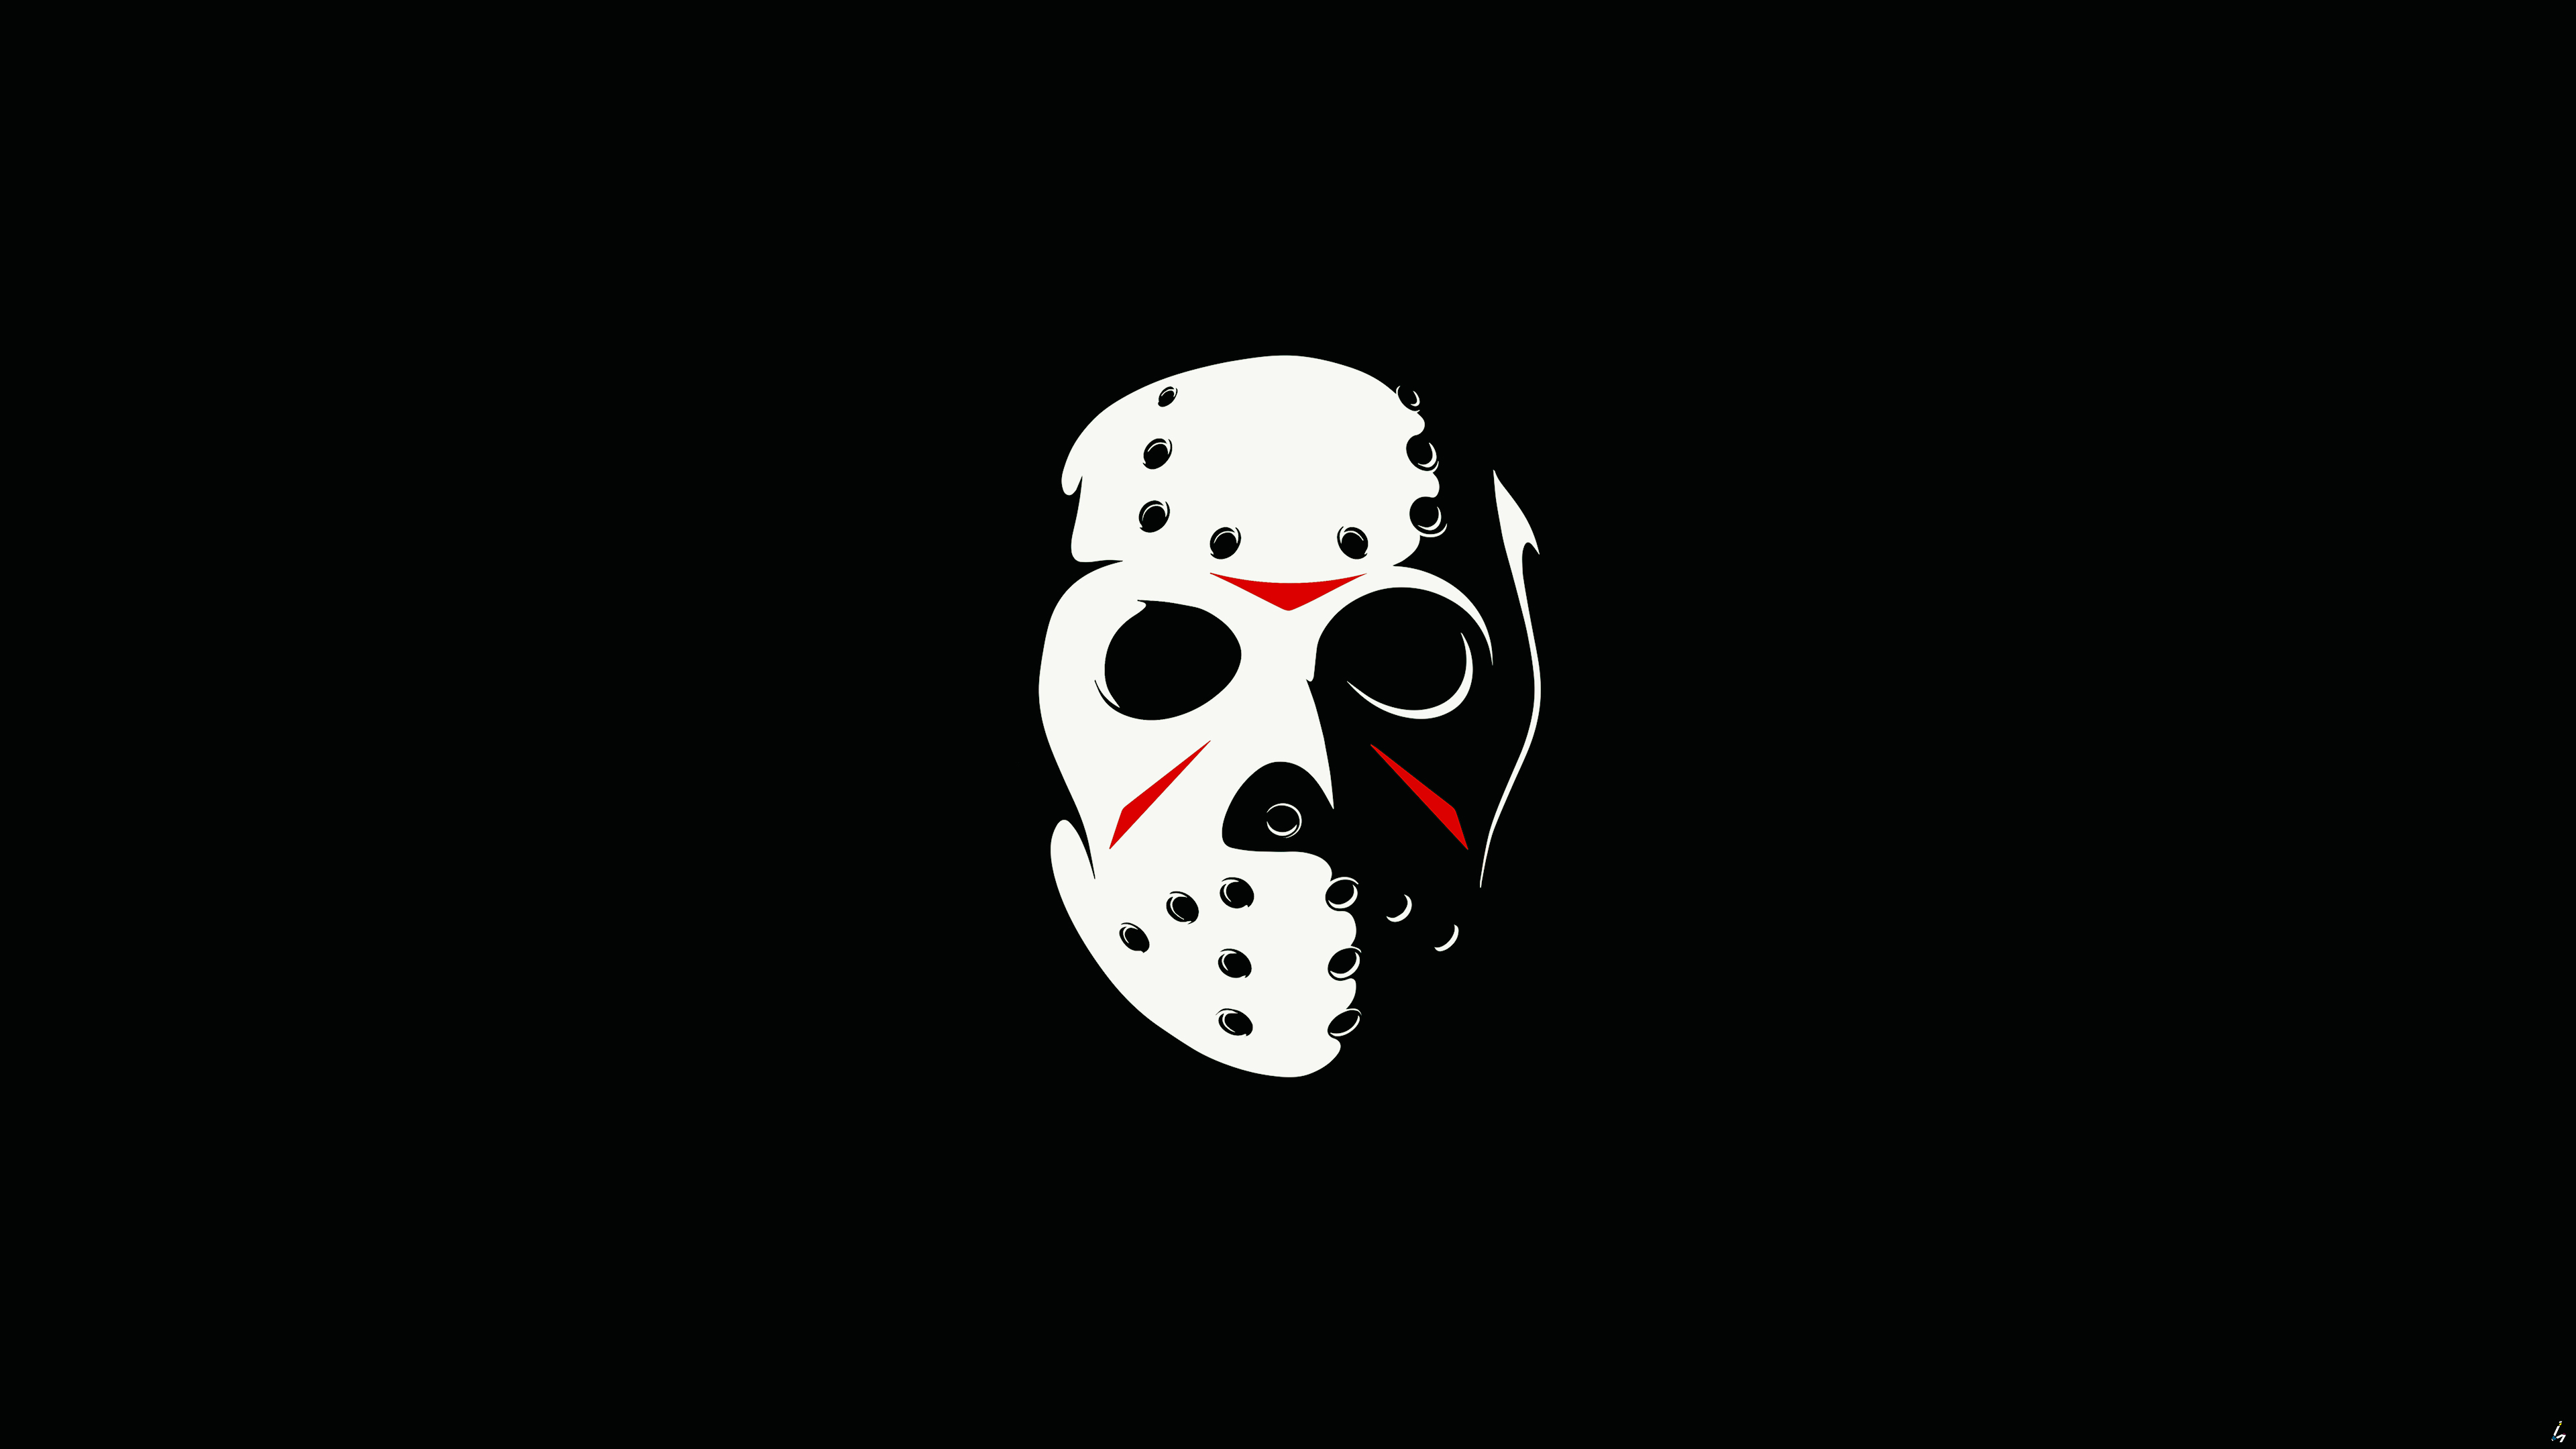 wallpaper 4k friday the 13th the game minimalism dark 4k 2017 games